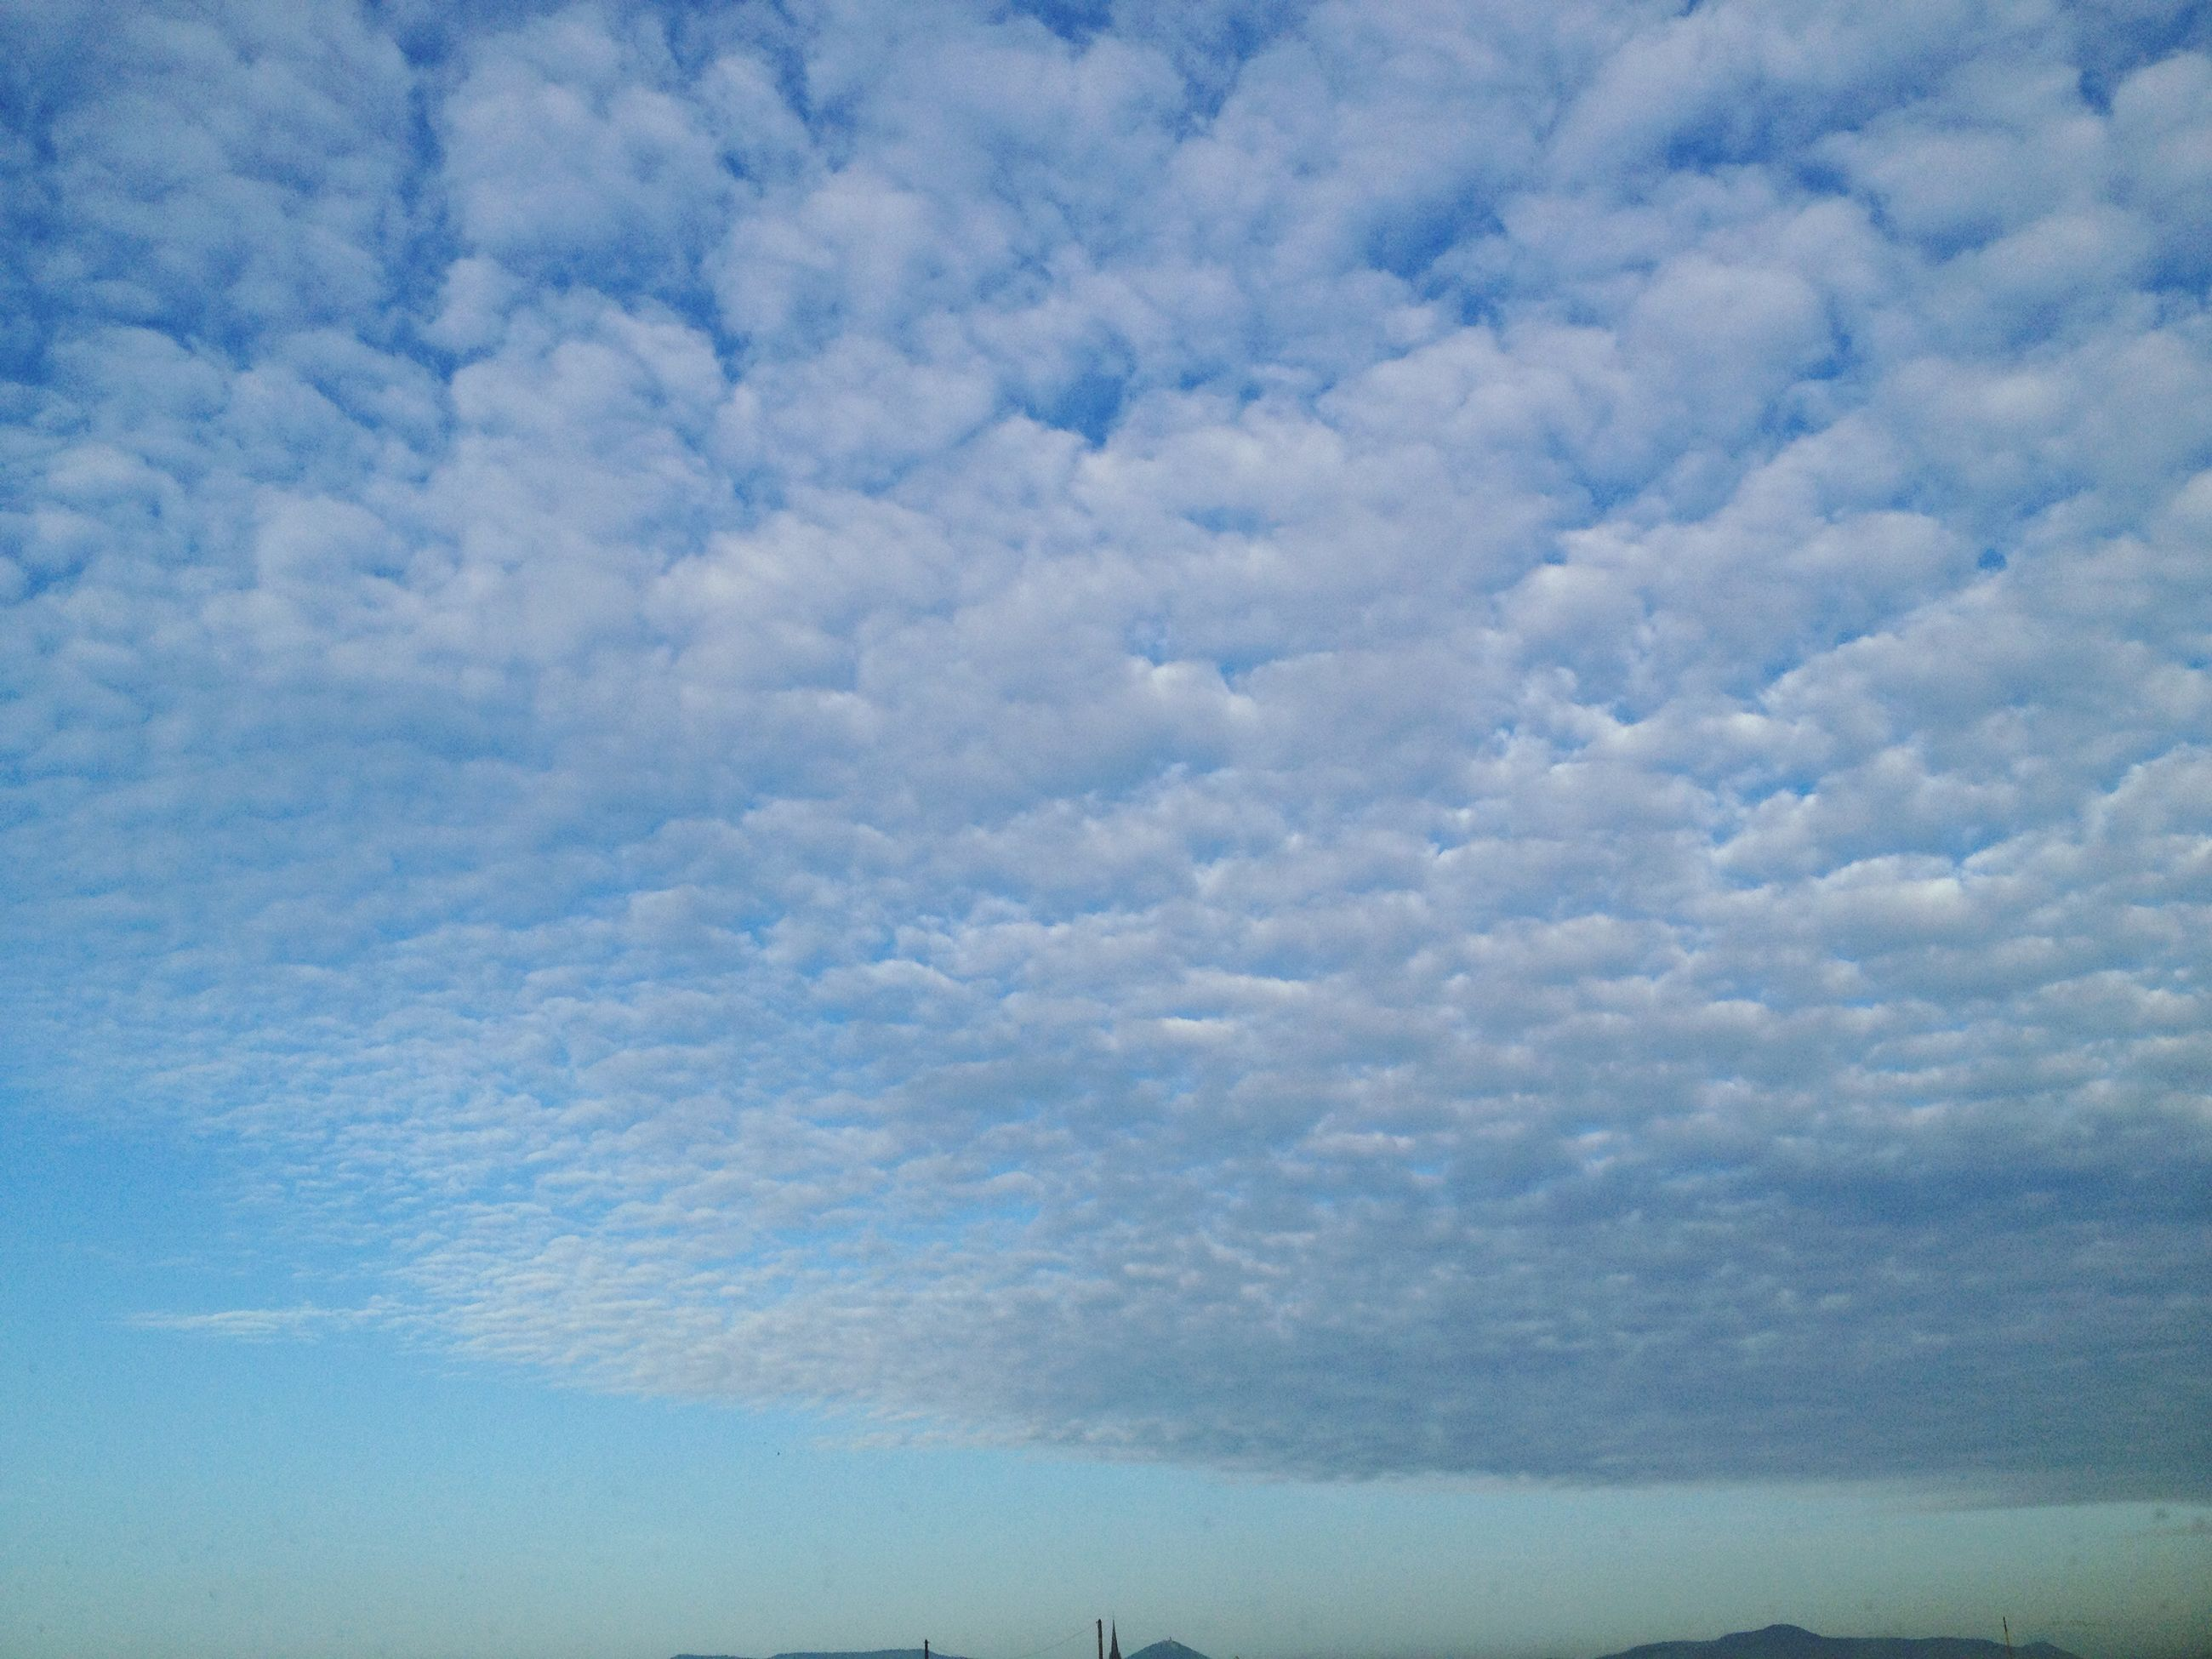 sky, cloud - sky, low angle view, cloudy, beauty in nature, tranquility, blue, scenics, tranquil scene, nature, cloud, cloudscape, weather, outdoors, idyllic, silhouette, day, no people, overcast, sunlight